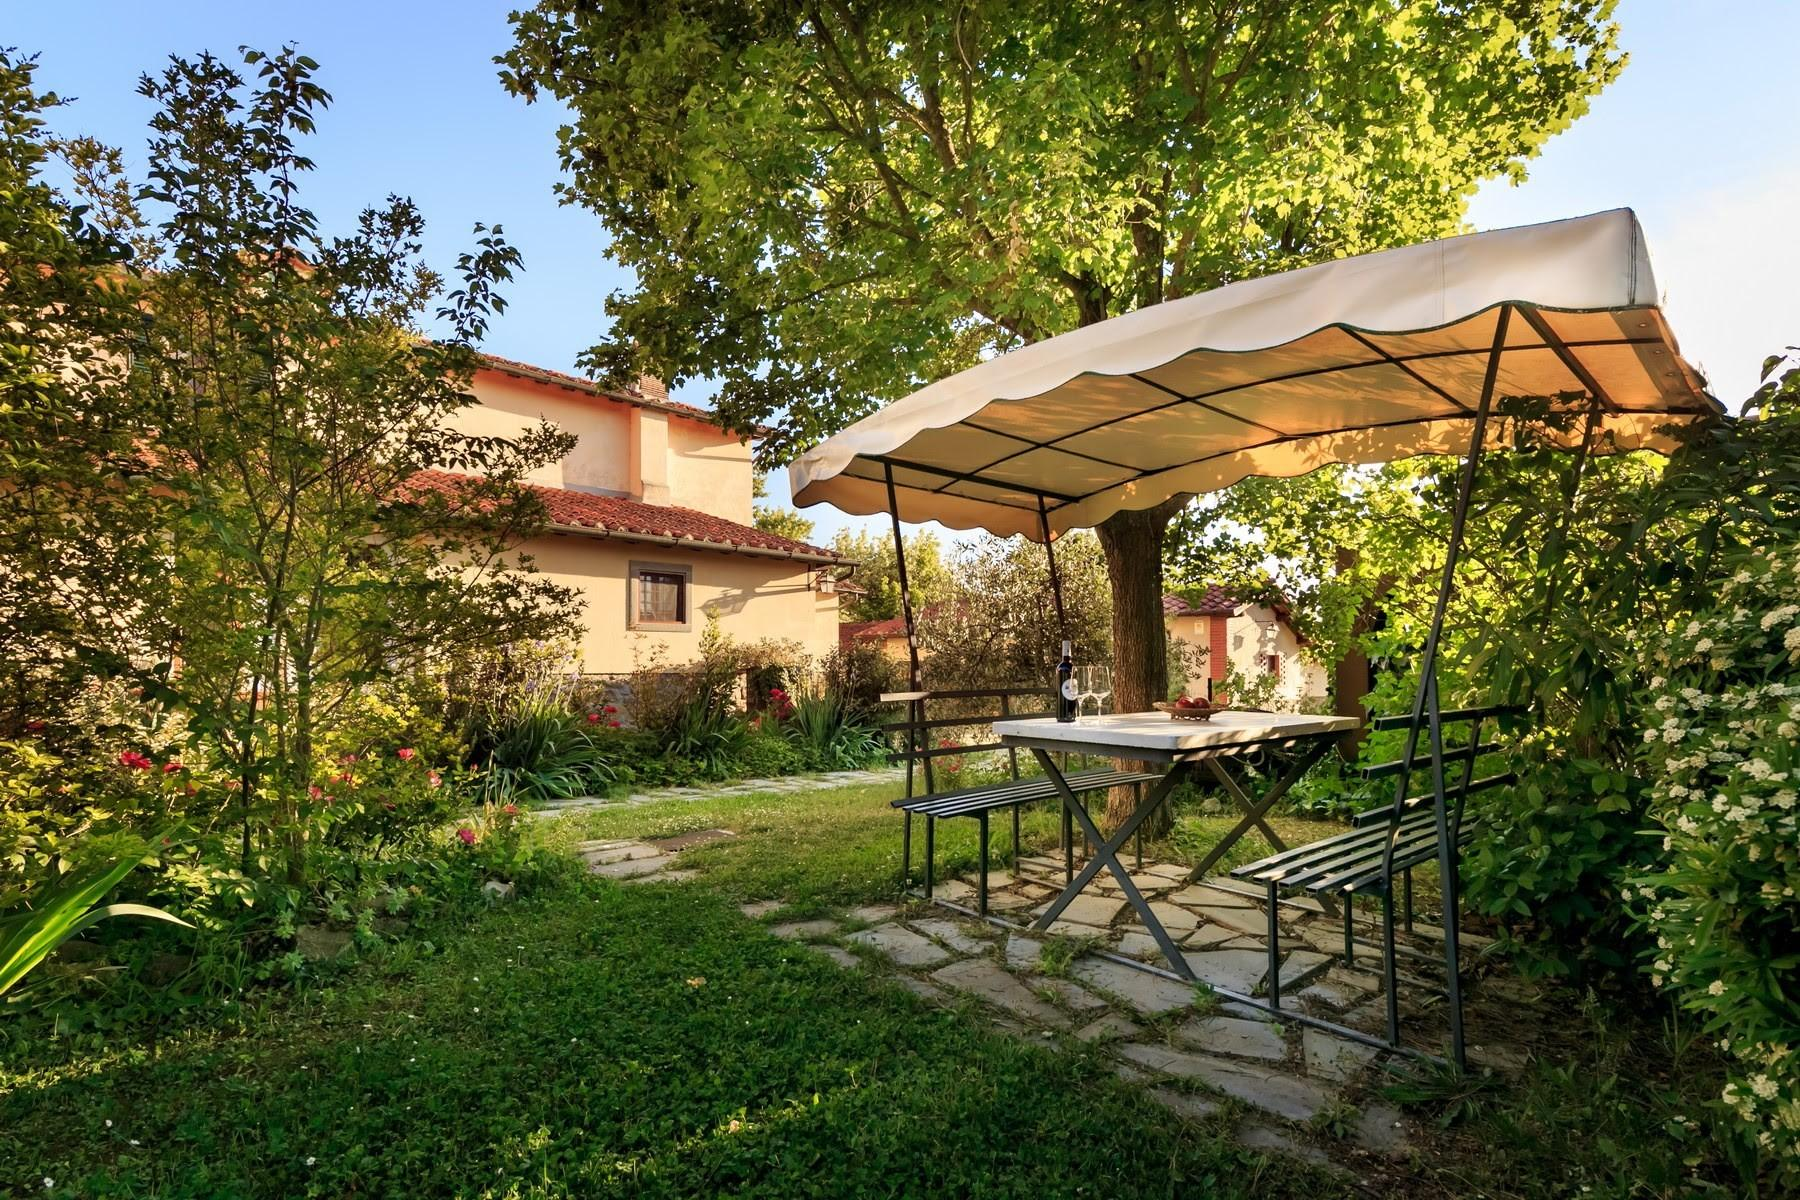 Agritourismo and Biodynamic farm in the heart of Tuscany with 15 ha of land. - 15